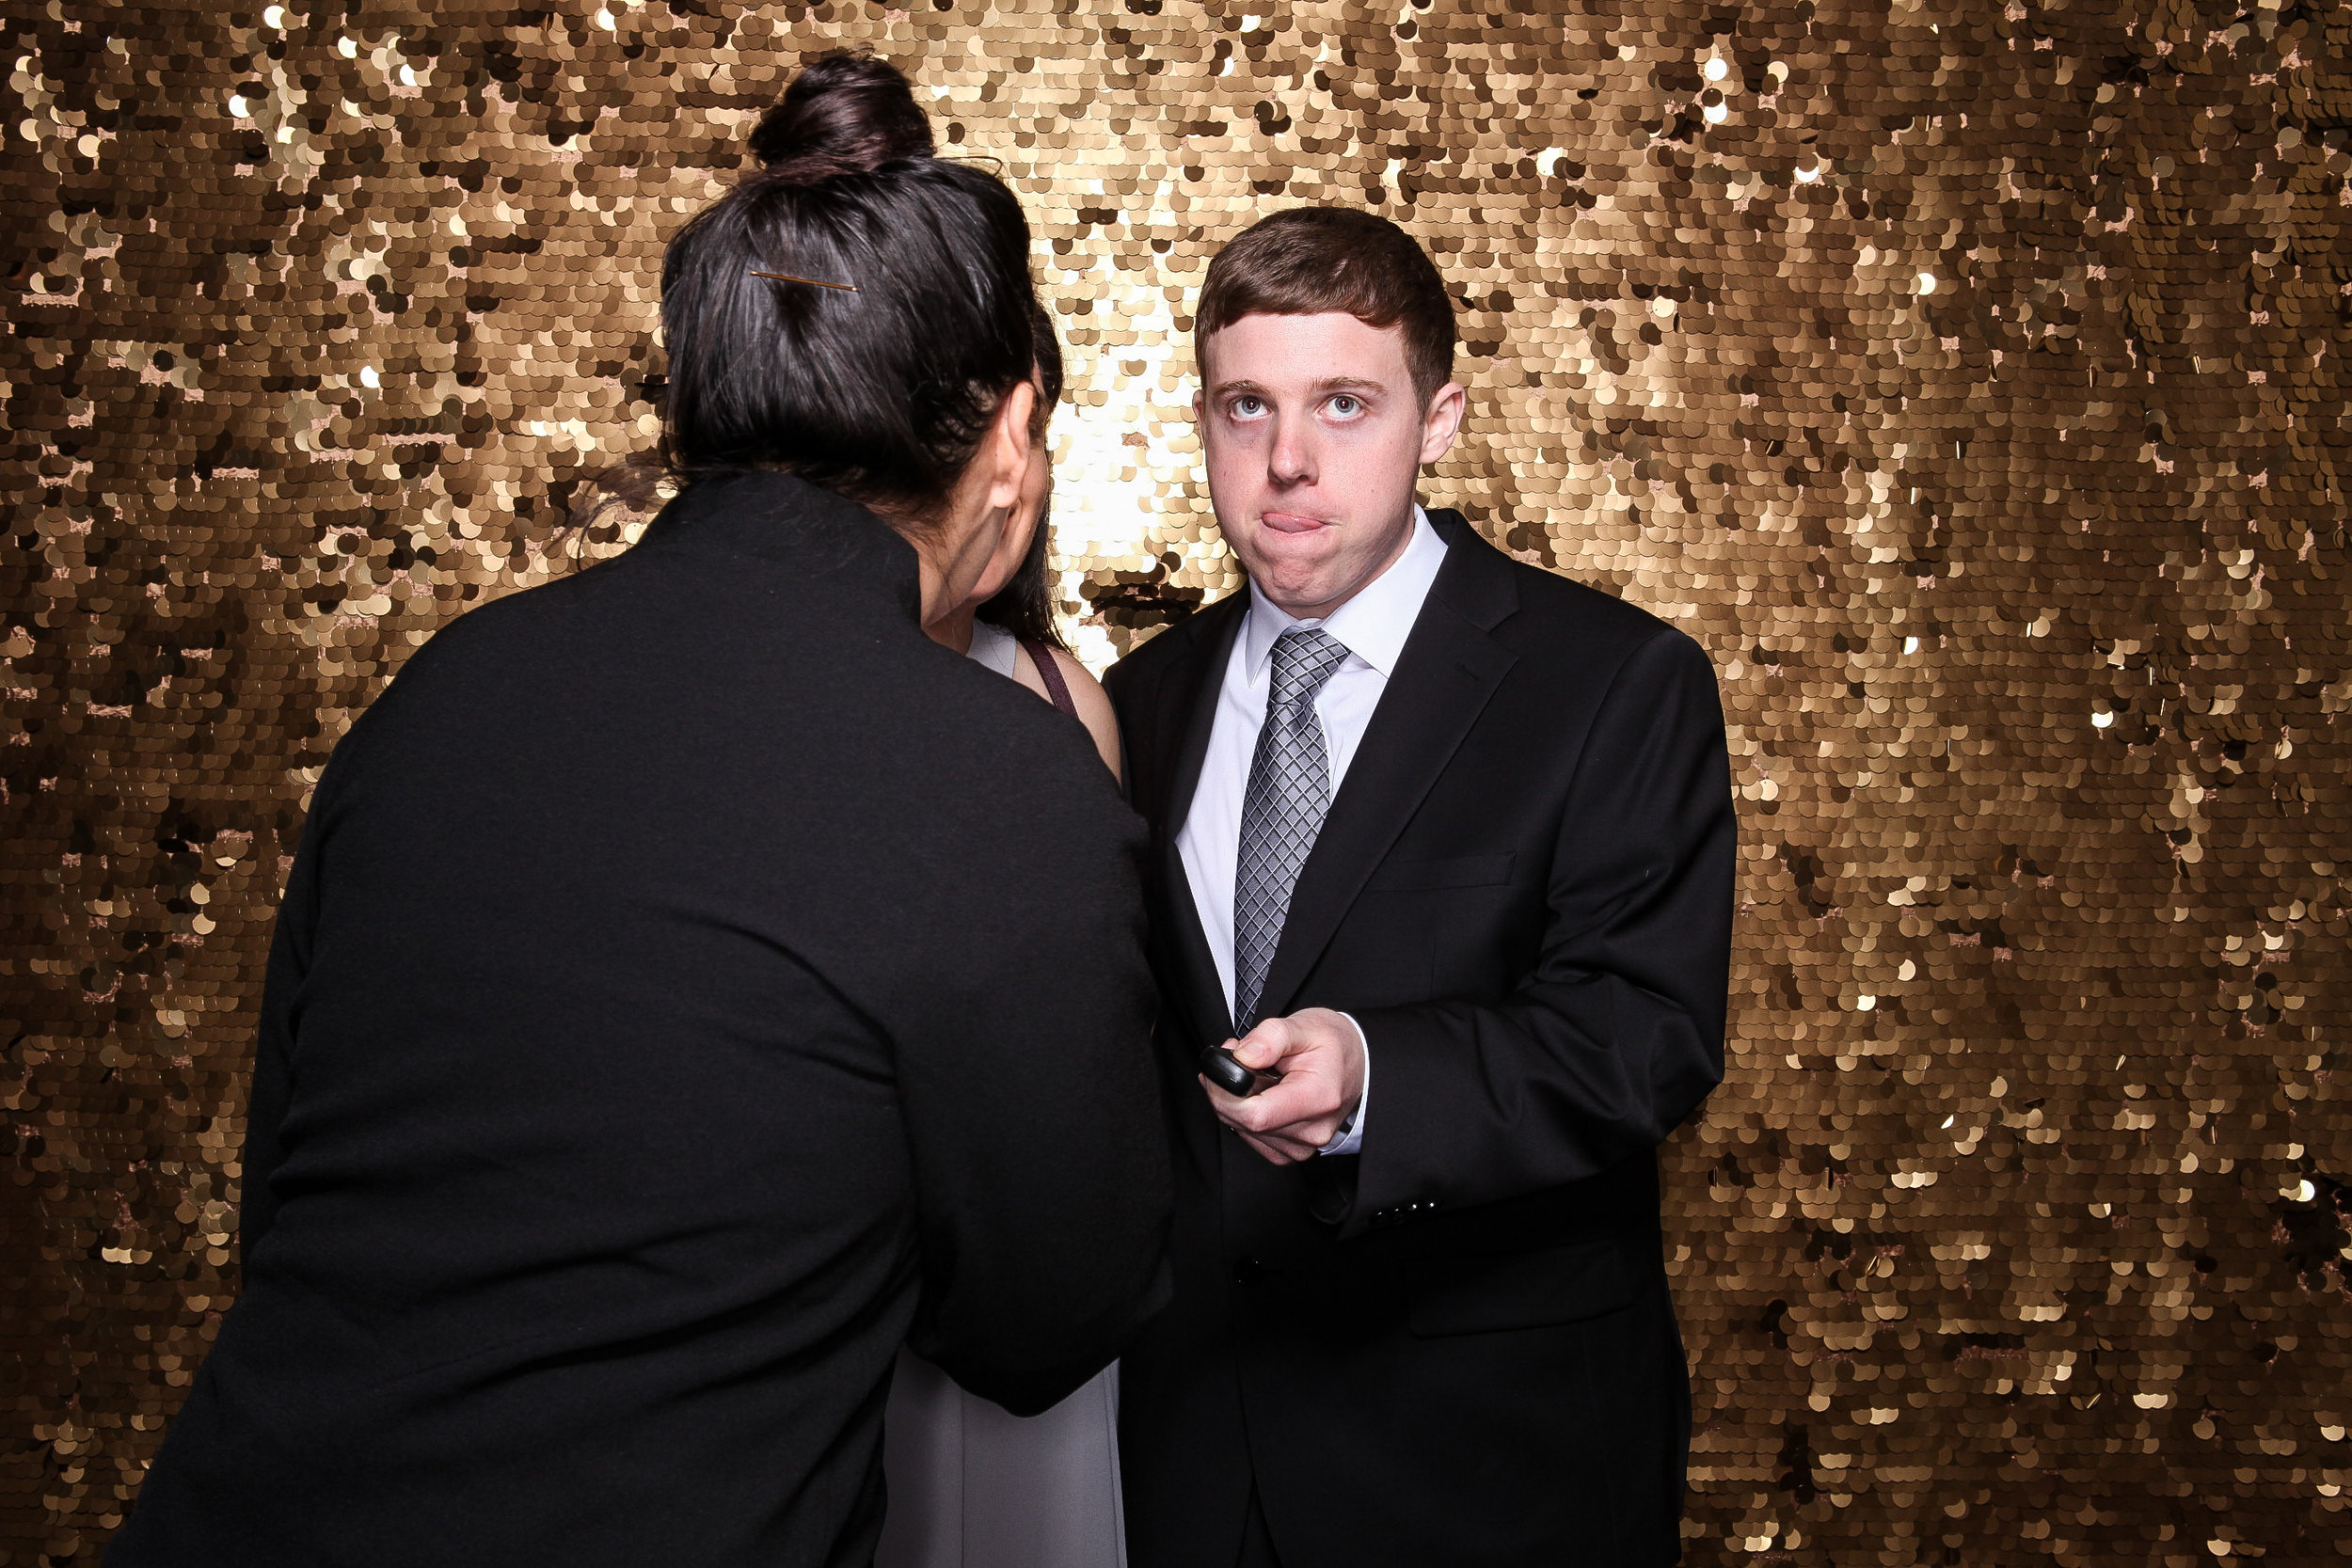 20190503_Adelphi_Senior_Formal-111.jpg